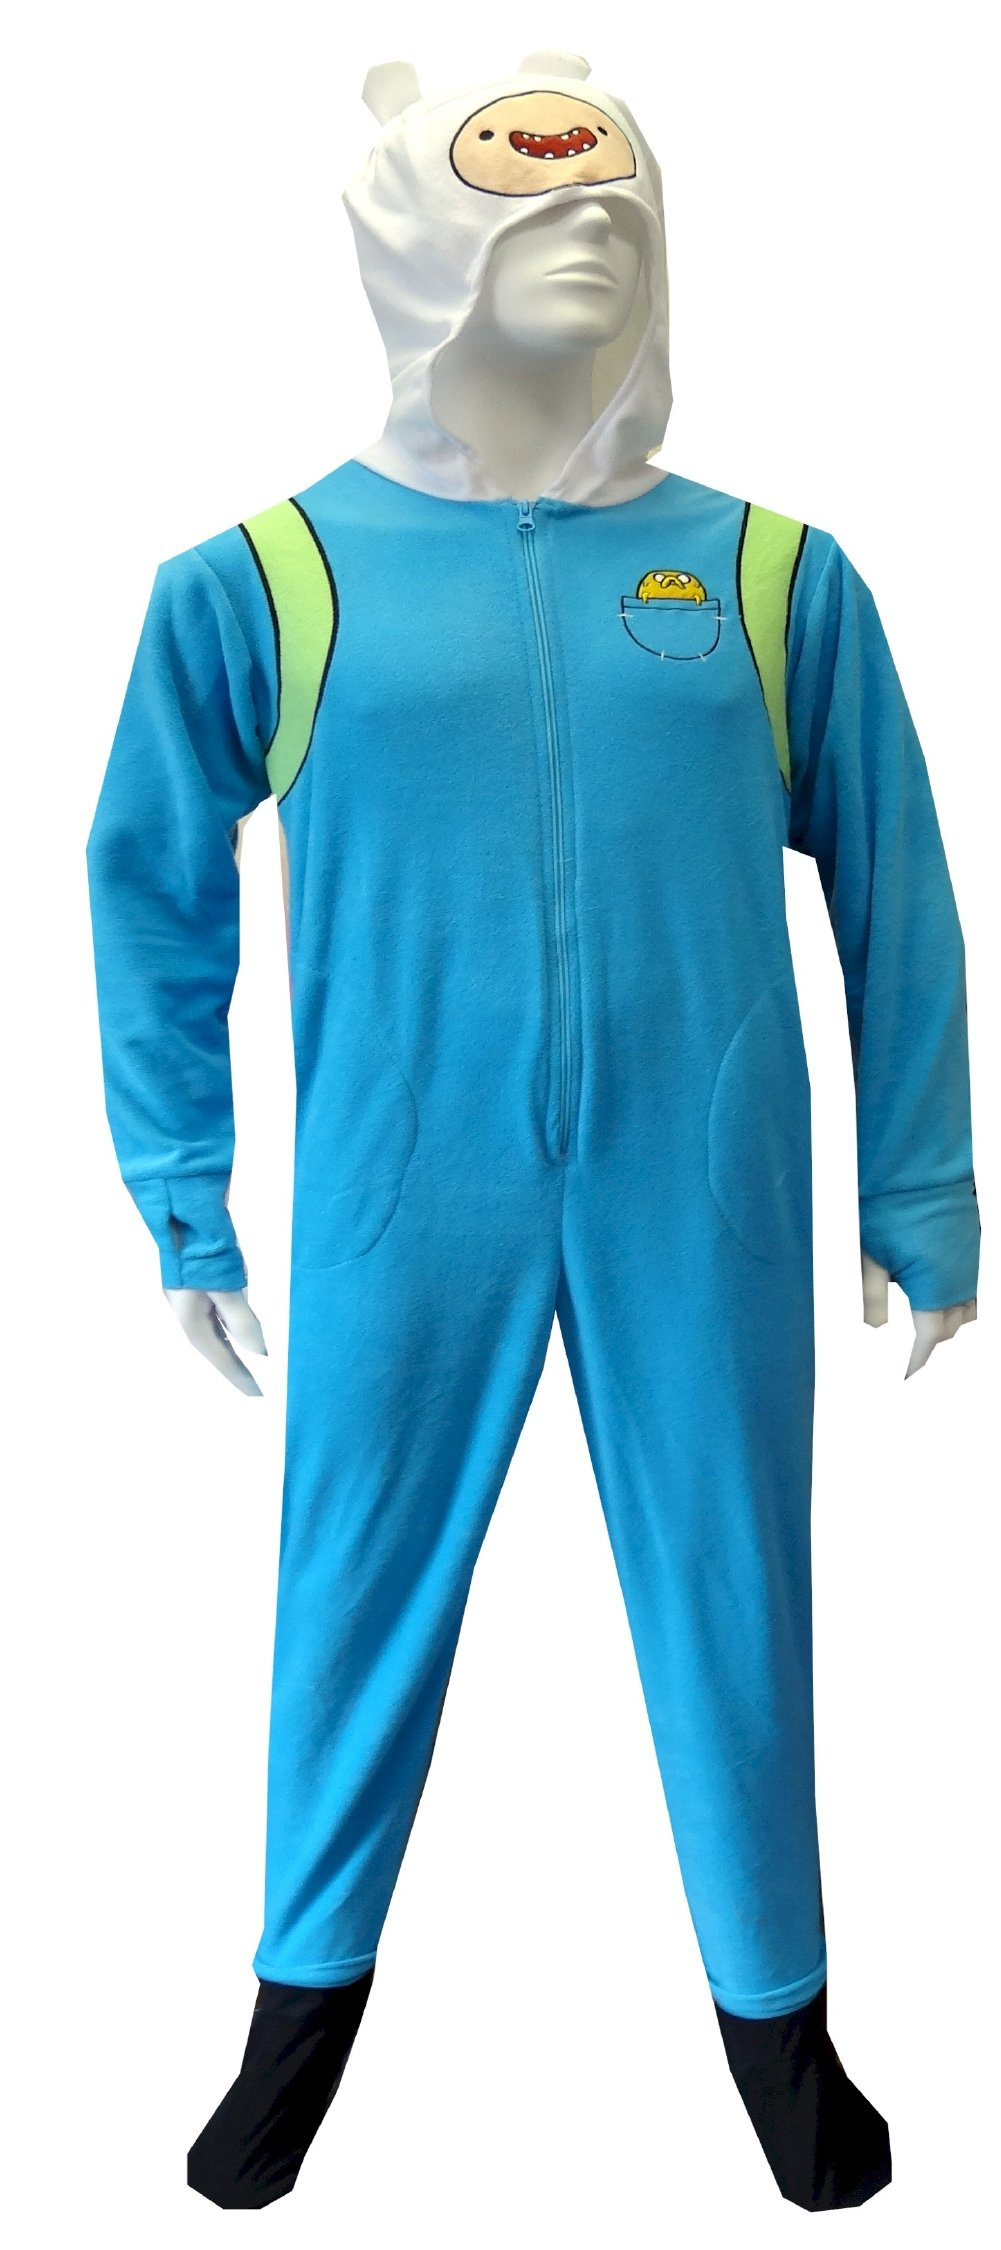 Adventure Time Finn The Human One Piece Footie Pajama for men